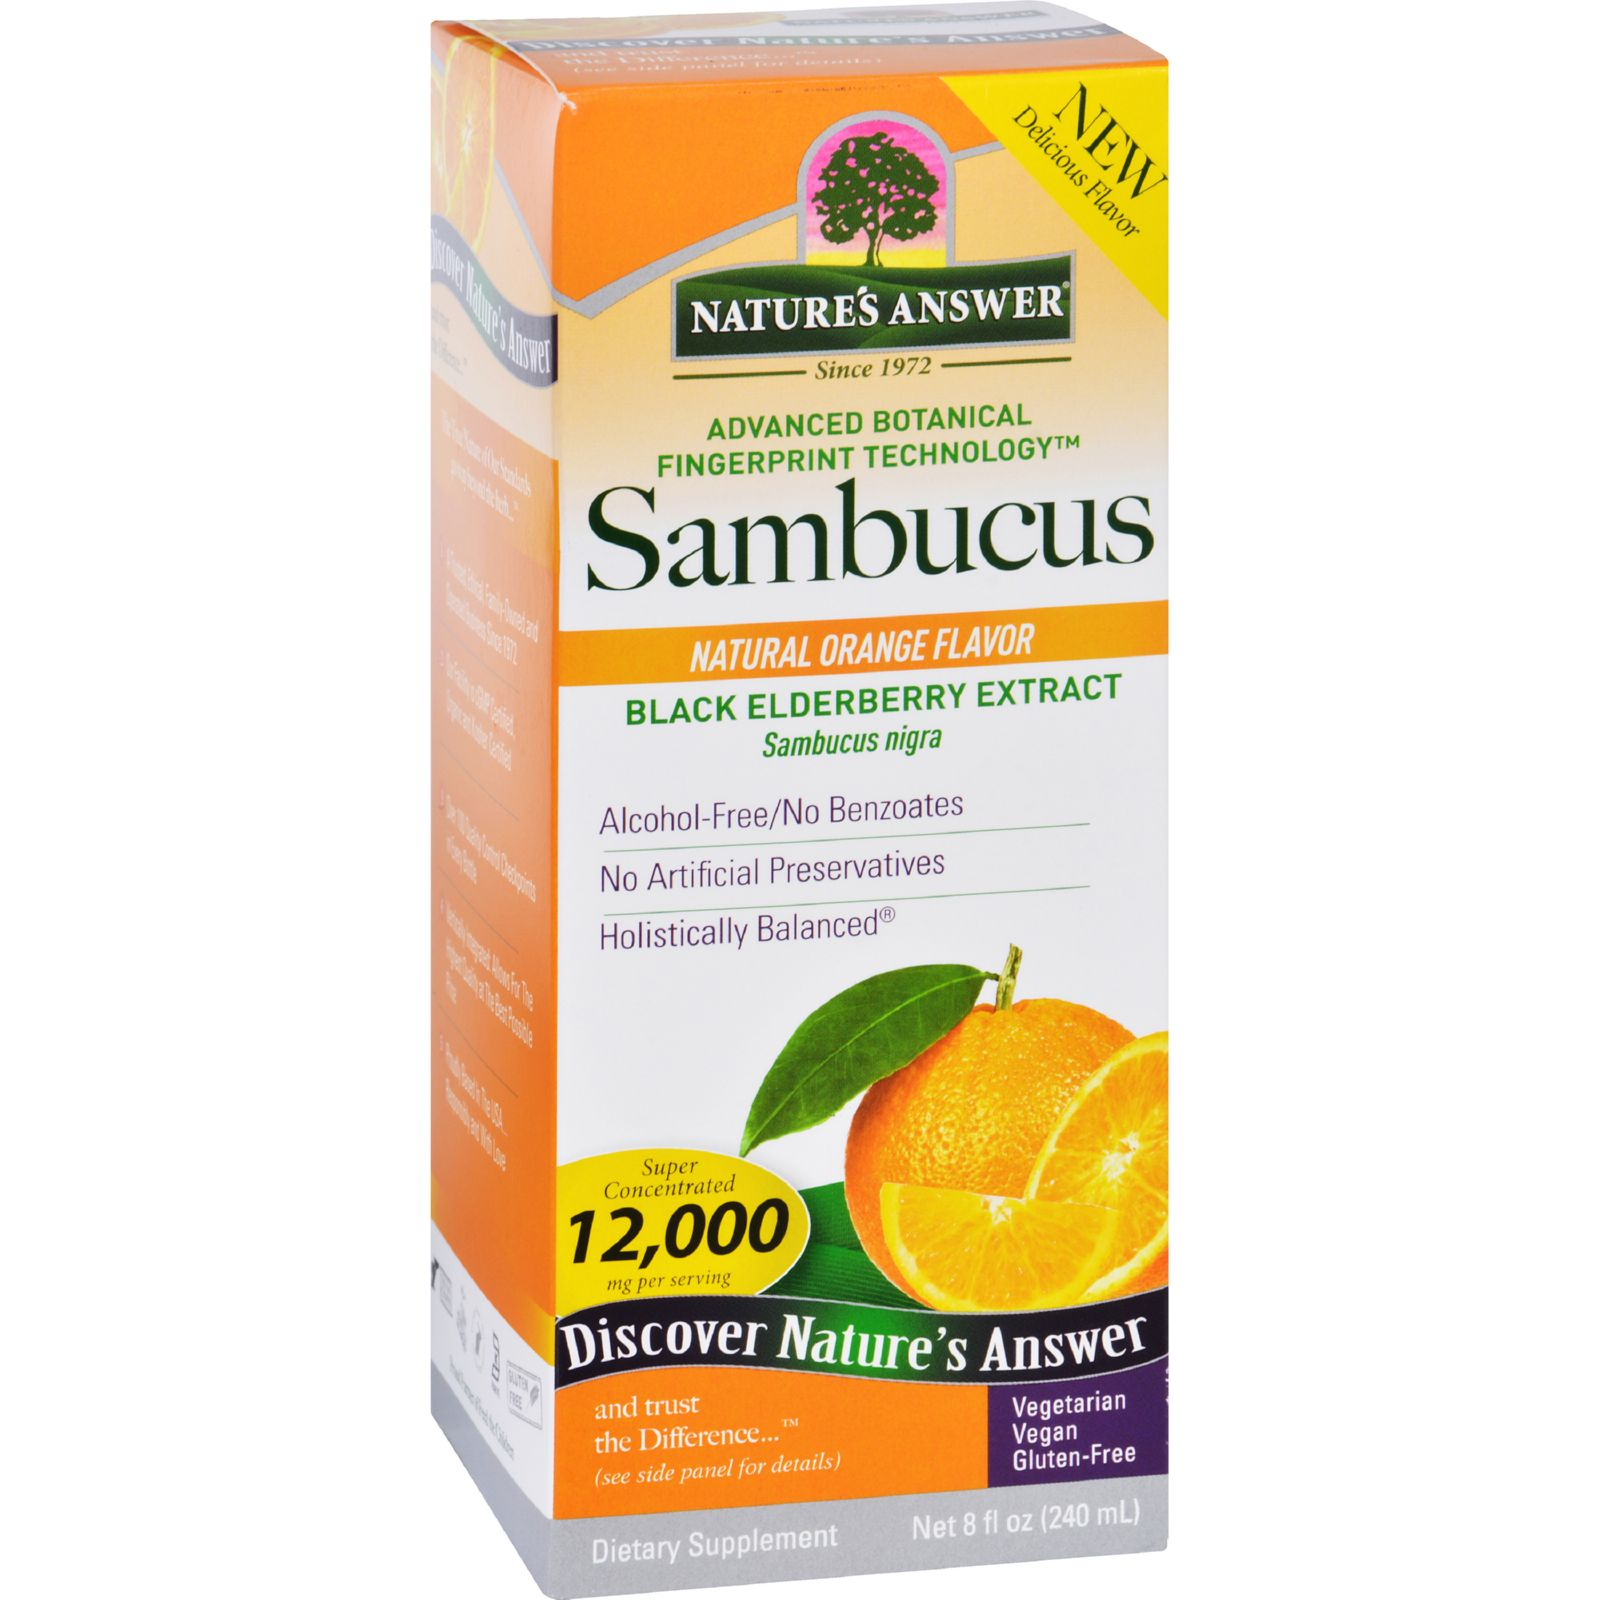 Natures Answer Sambucus - Original - Natural Orange Flavor - 8 Oz